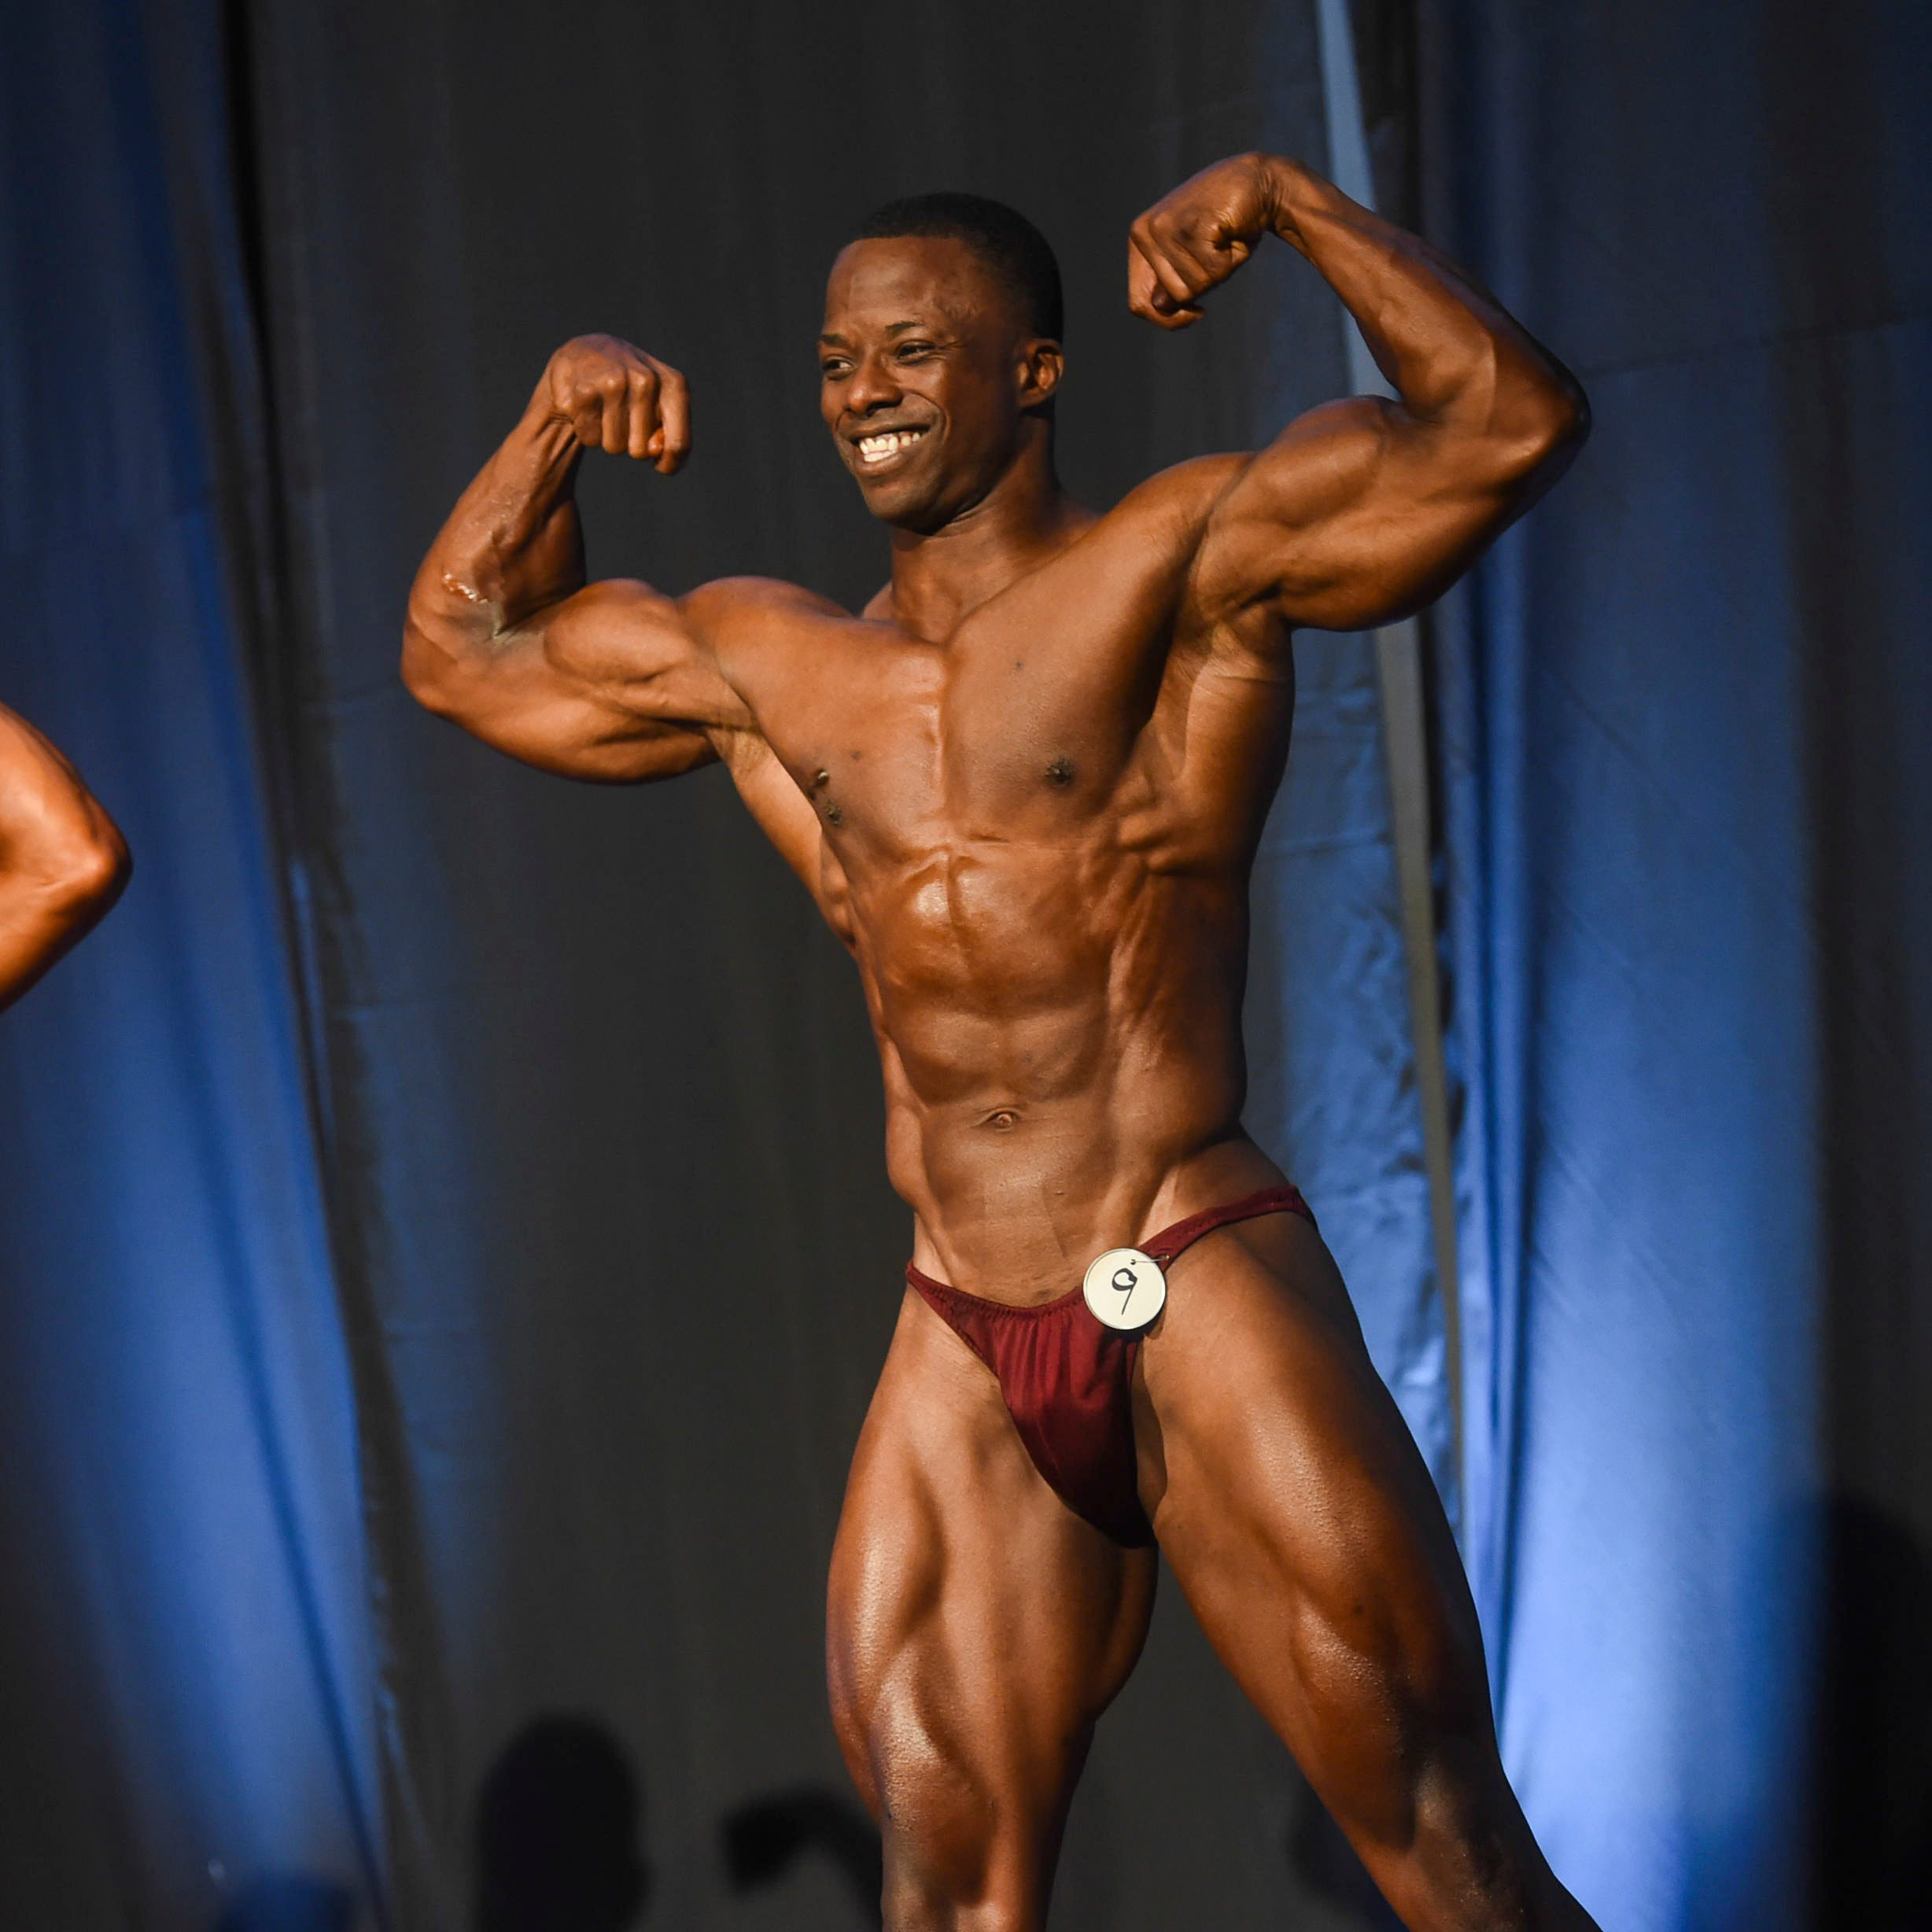 Competitors showcase hard work at bodybuilding competition